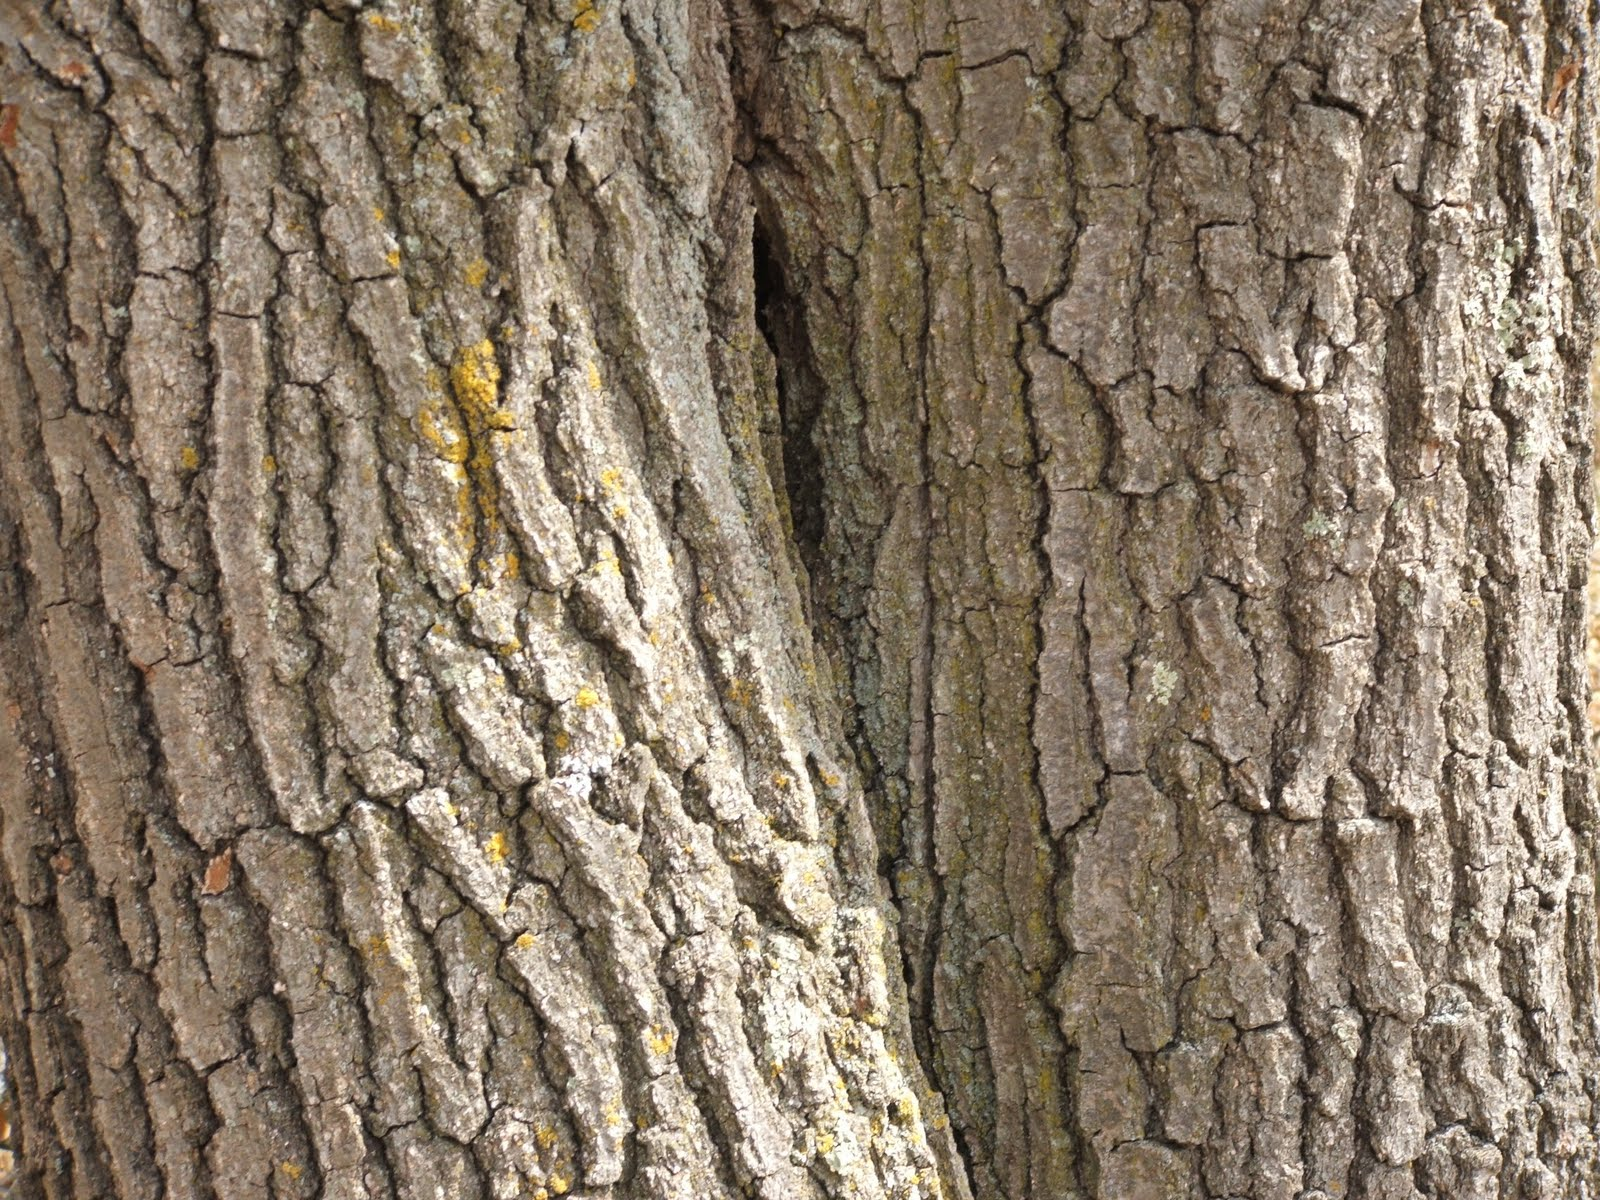 Oak trees, tree bark, bark, double tree, moss, horizontal